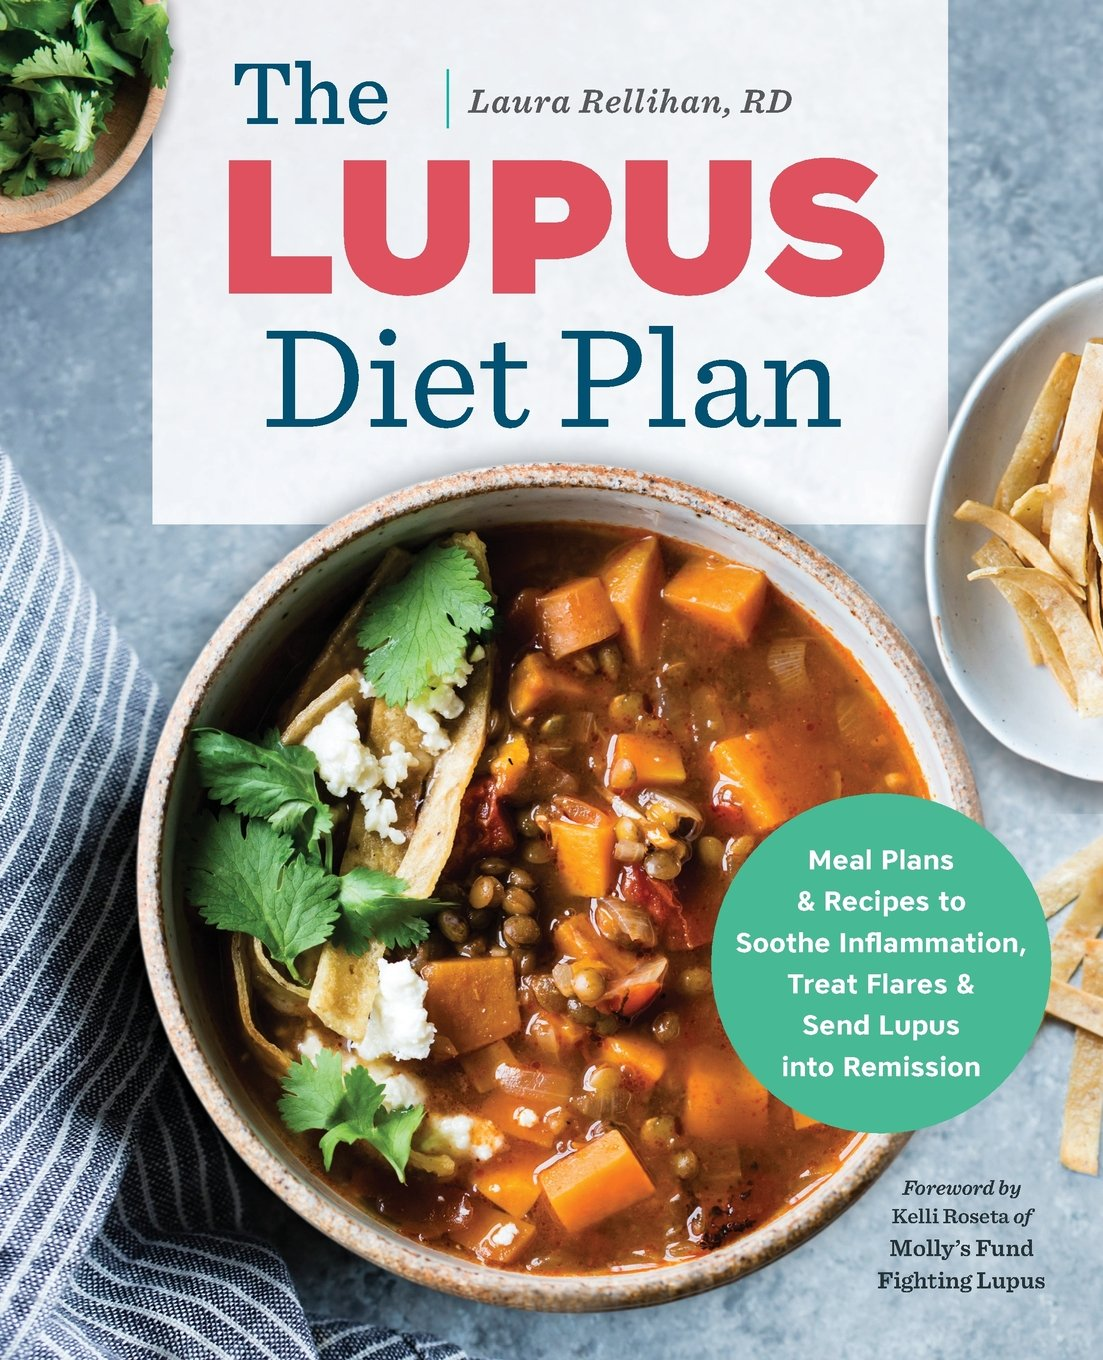 Lupus Diet Plan Inflammation Remission product image